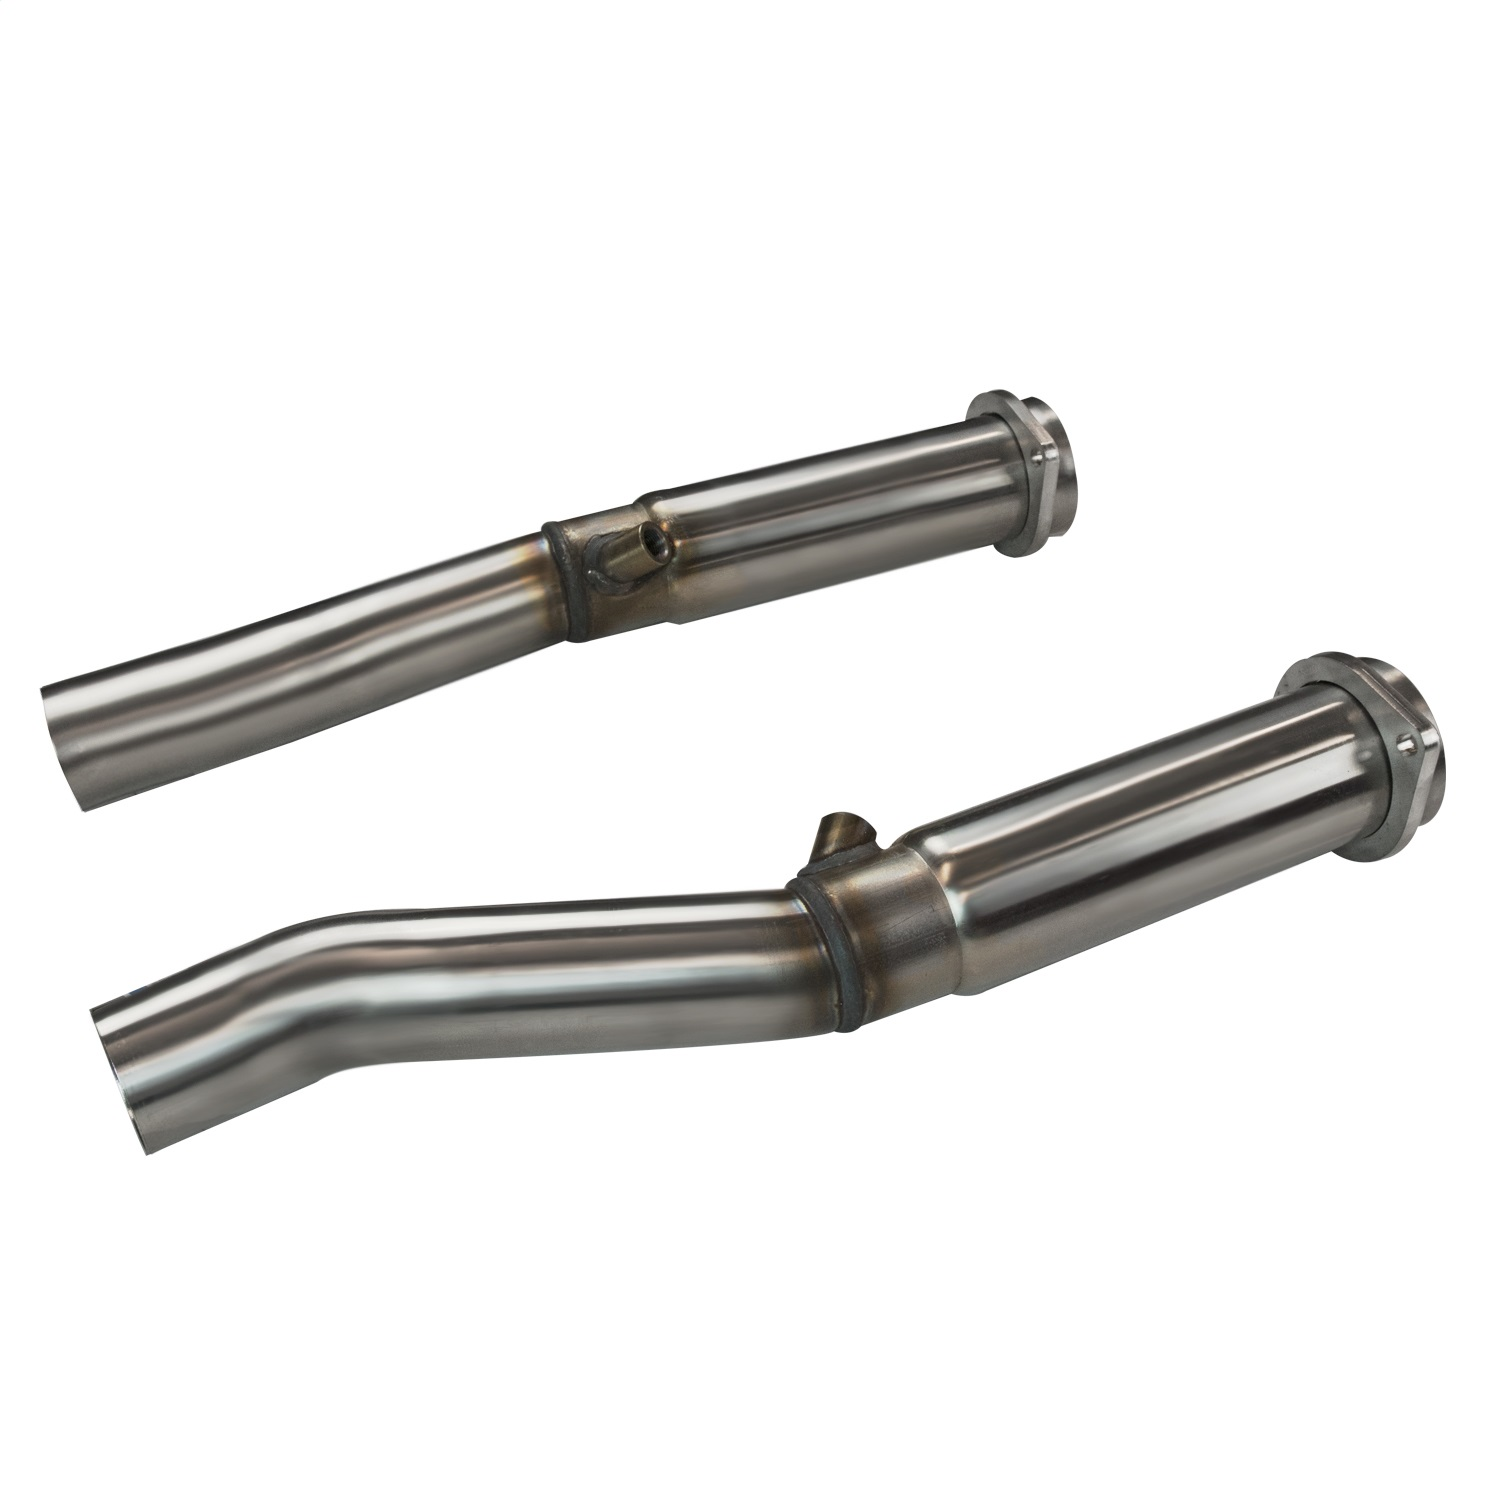 Kooks Custom Headers 23103150 Off Road Connection Pipes Fits 04-07 CTS